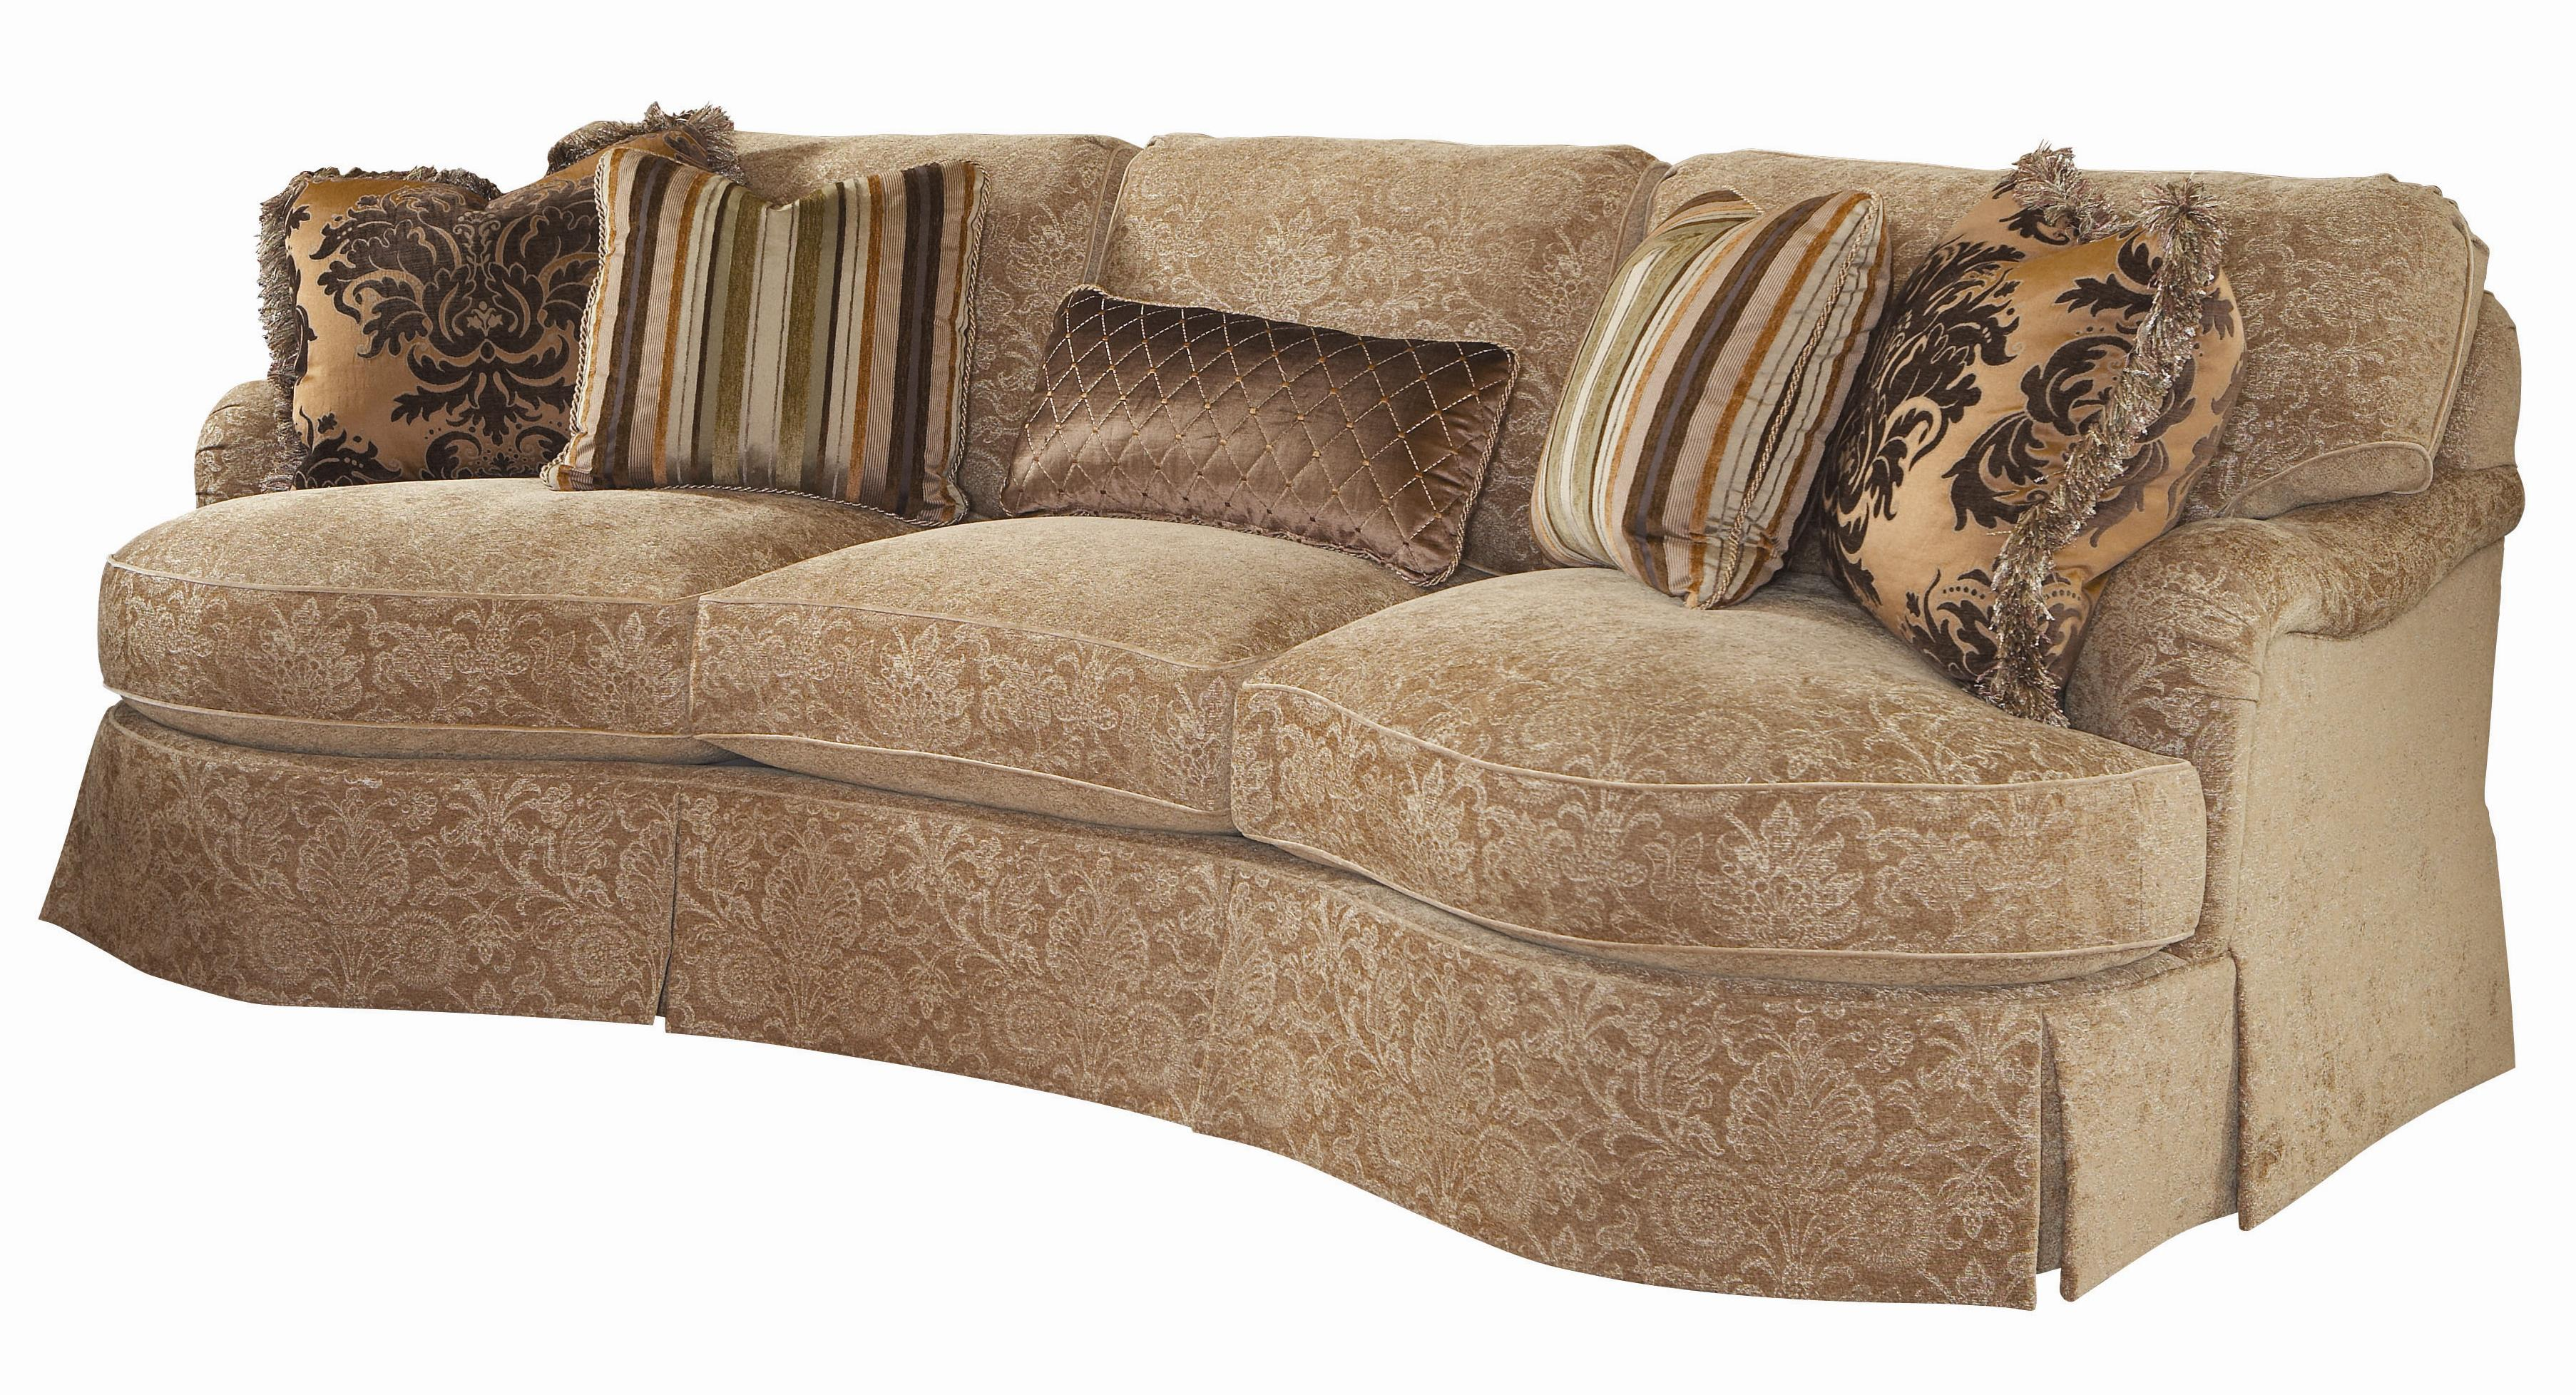 conversational sofa cover leather design living room lexington upholstery anderson loose back